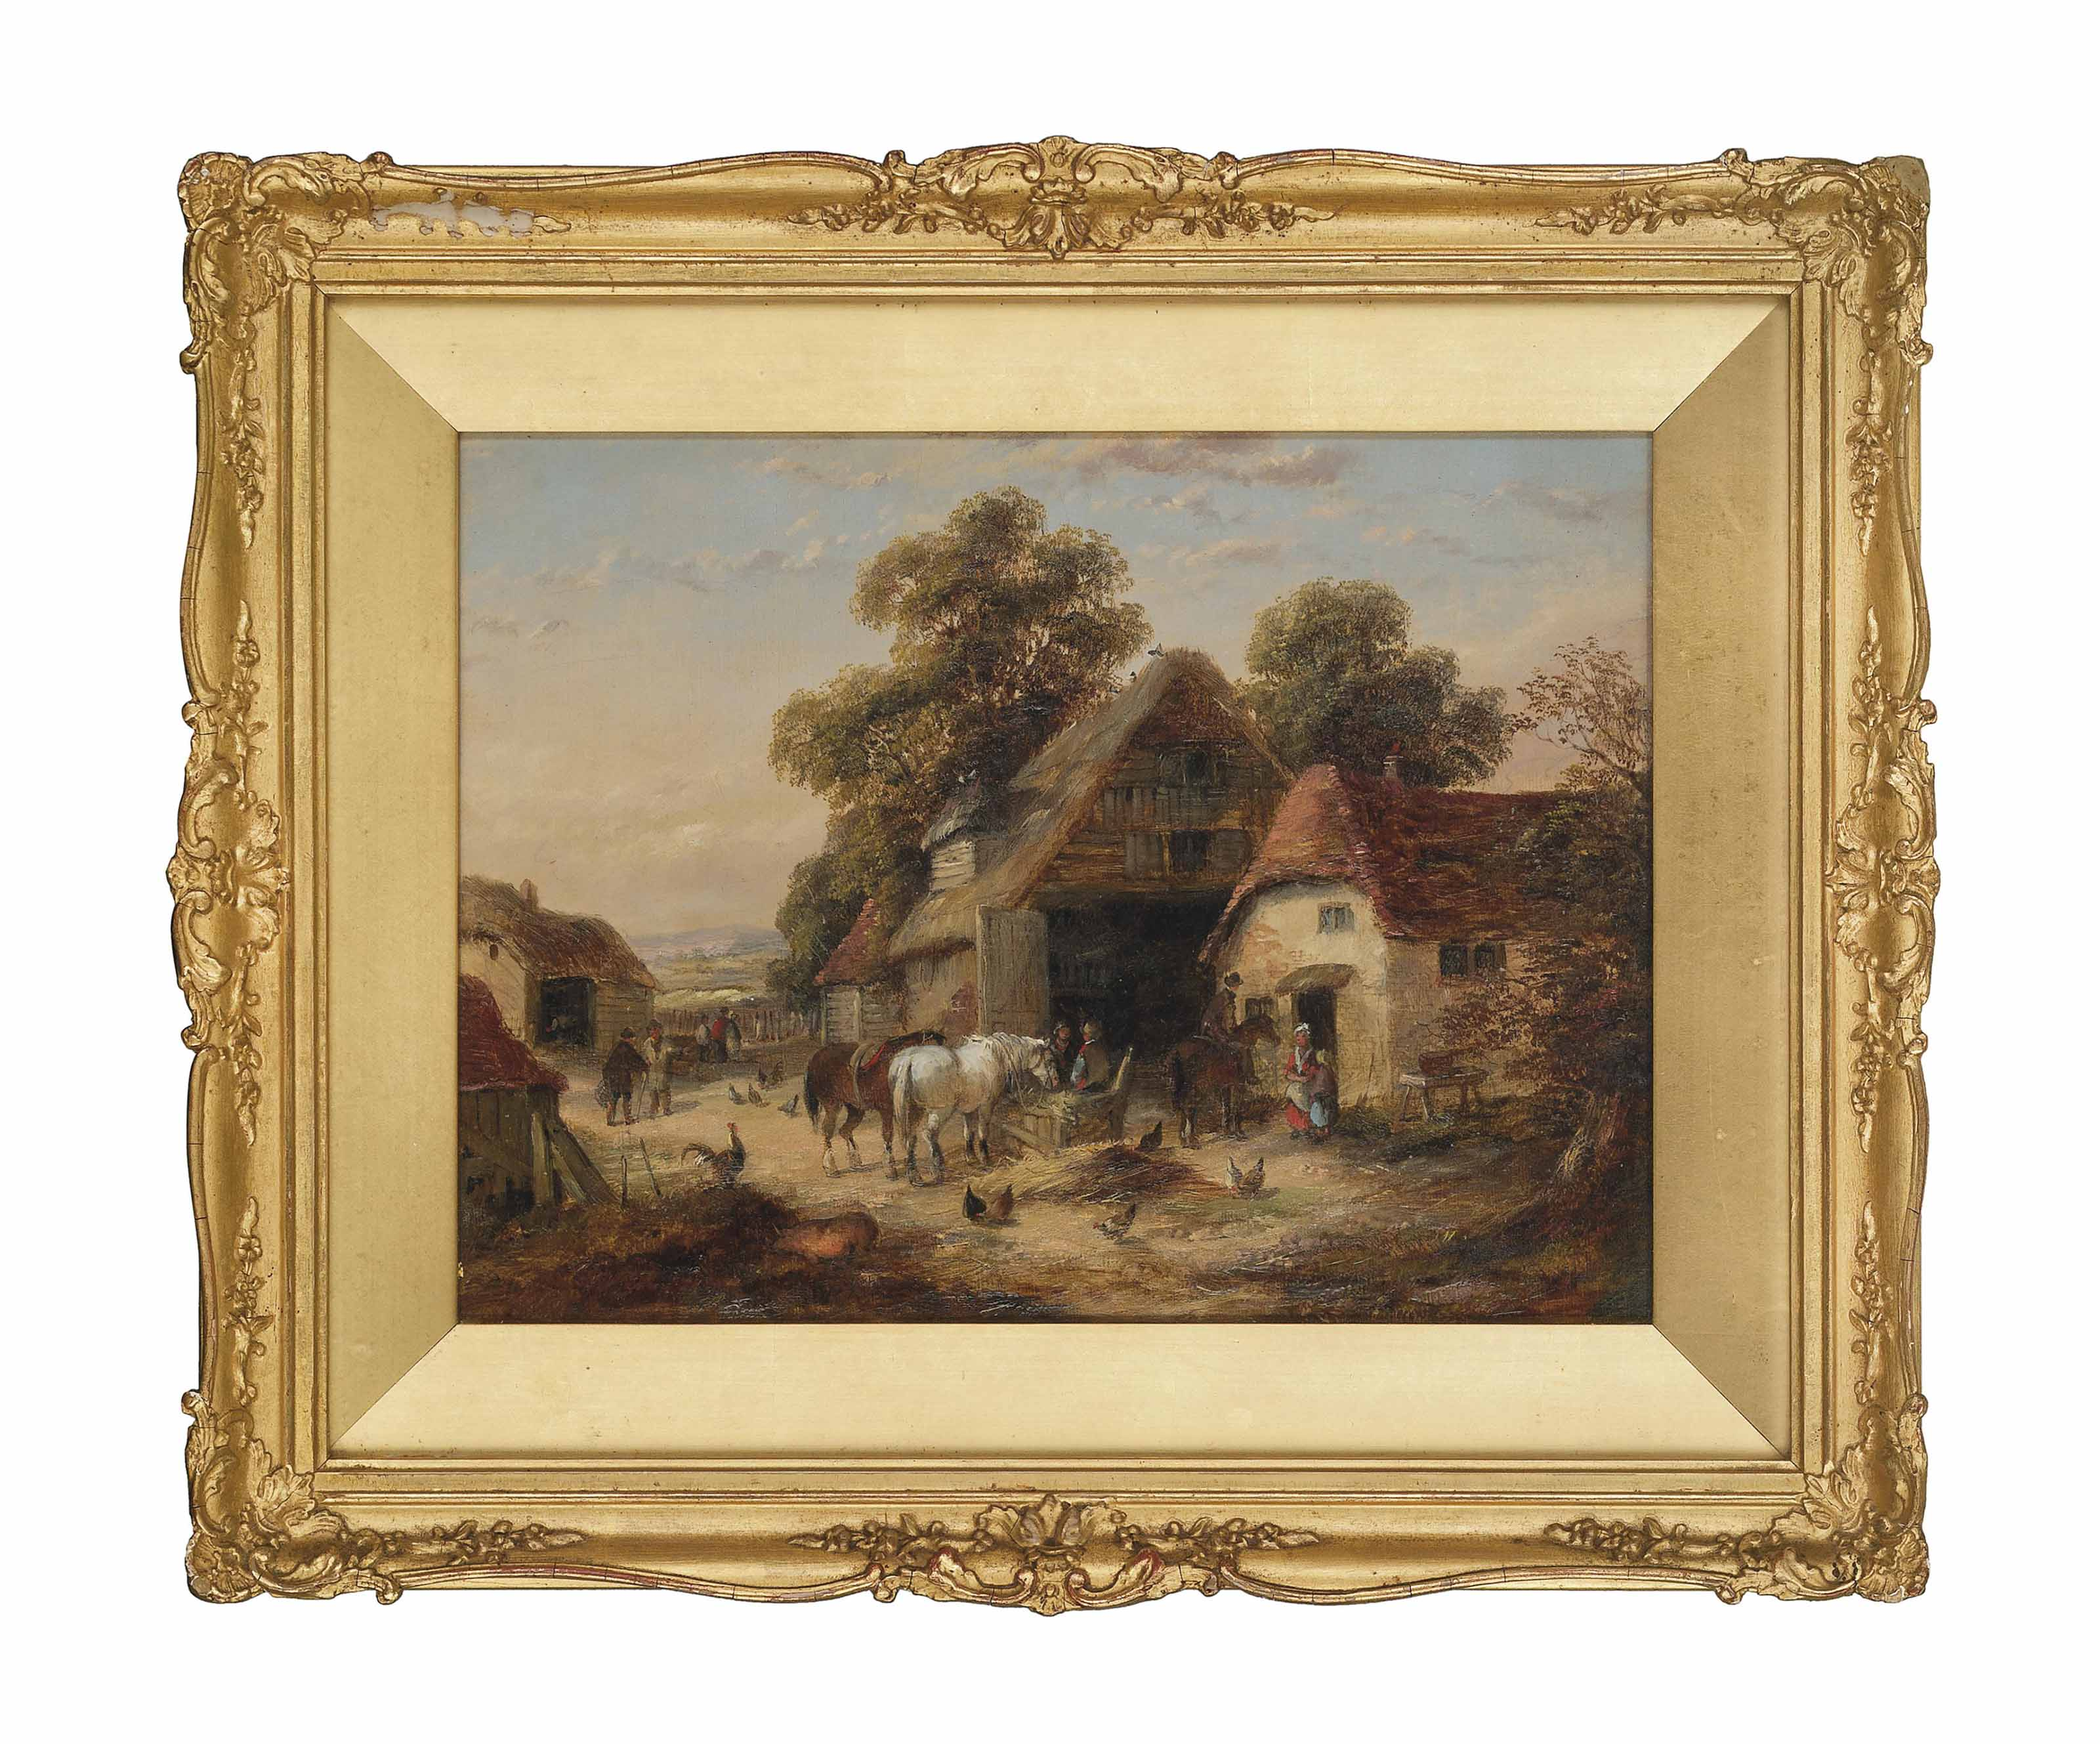 Harvest time; and Feeding the horses, a busy village scene